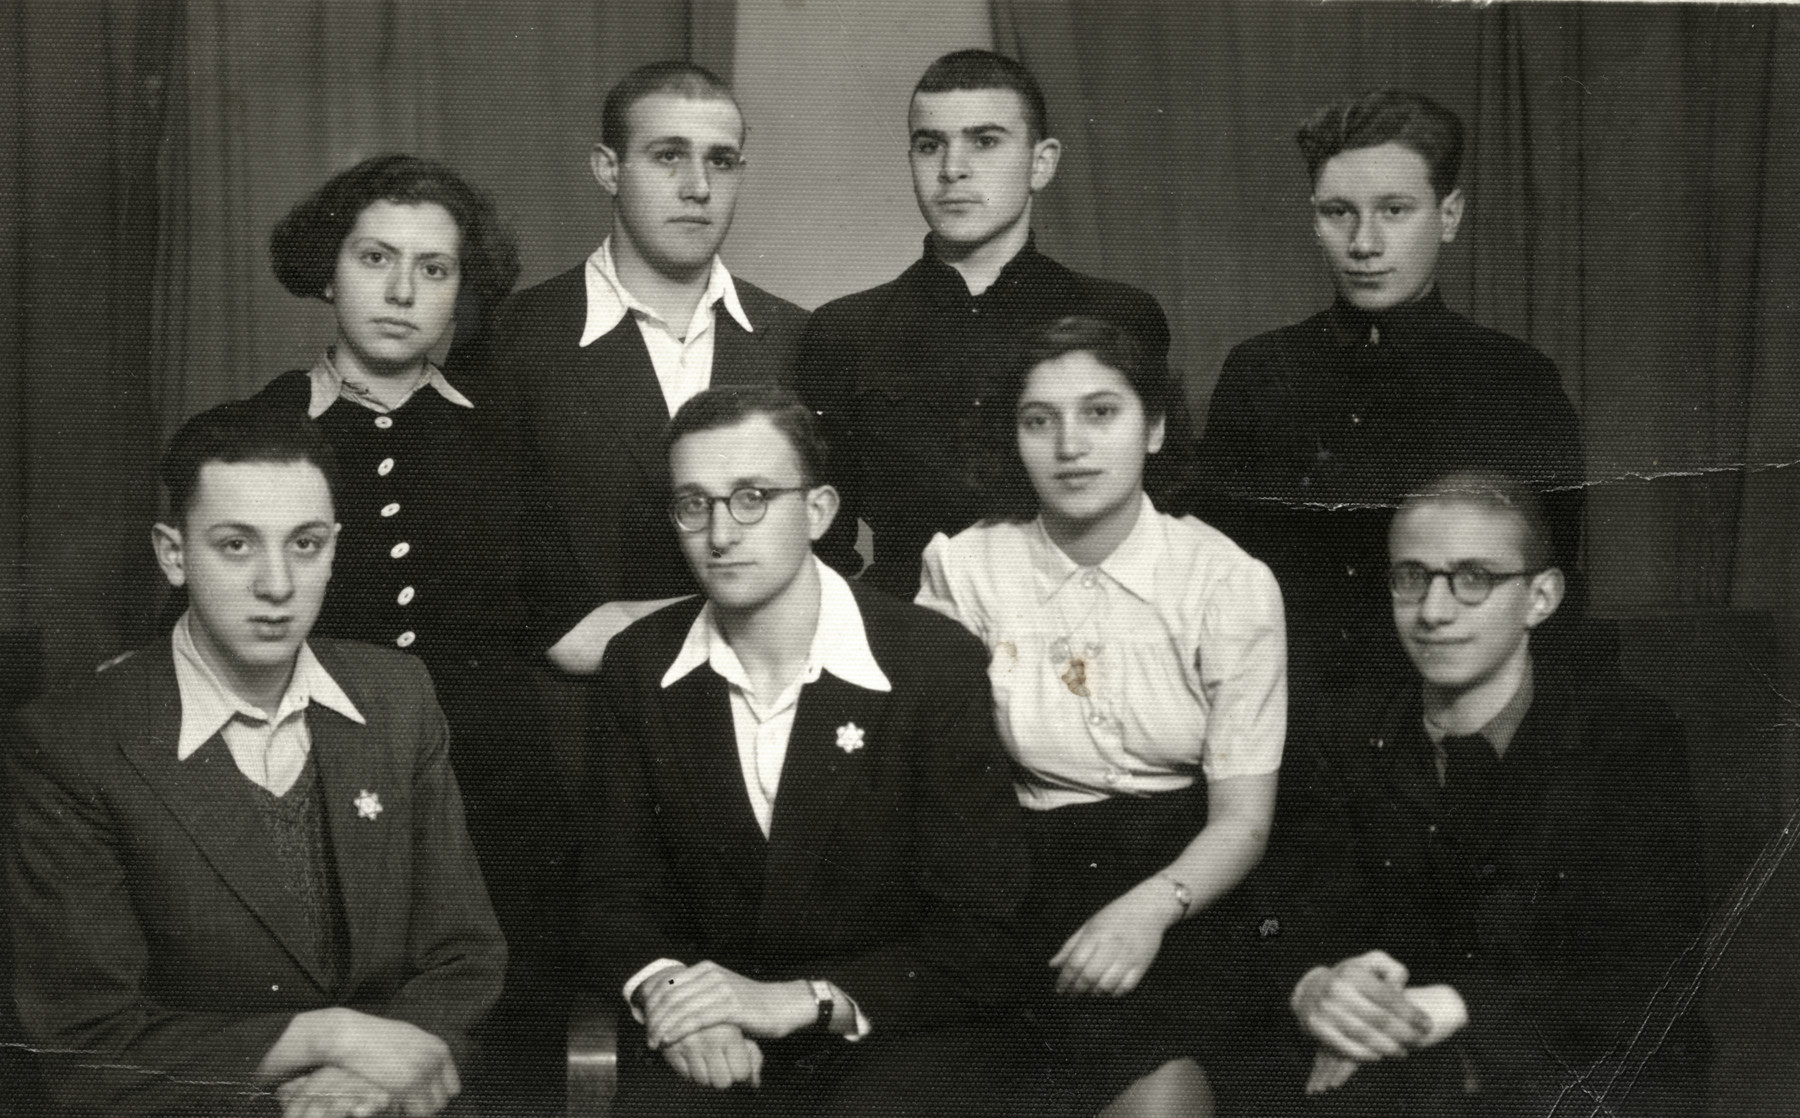 Group portrait of members of the Betar Zionist youth movement in Sofia.  Dora Levy is pictured on the top left.